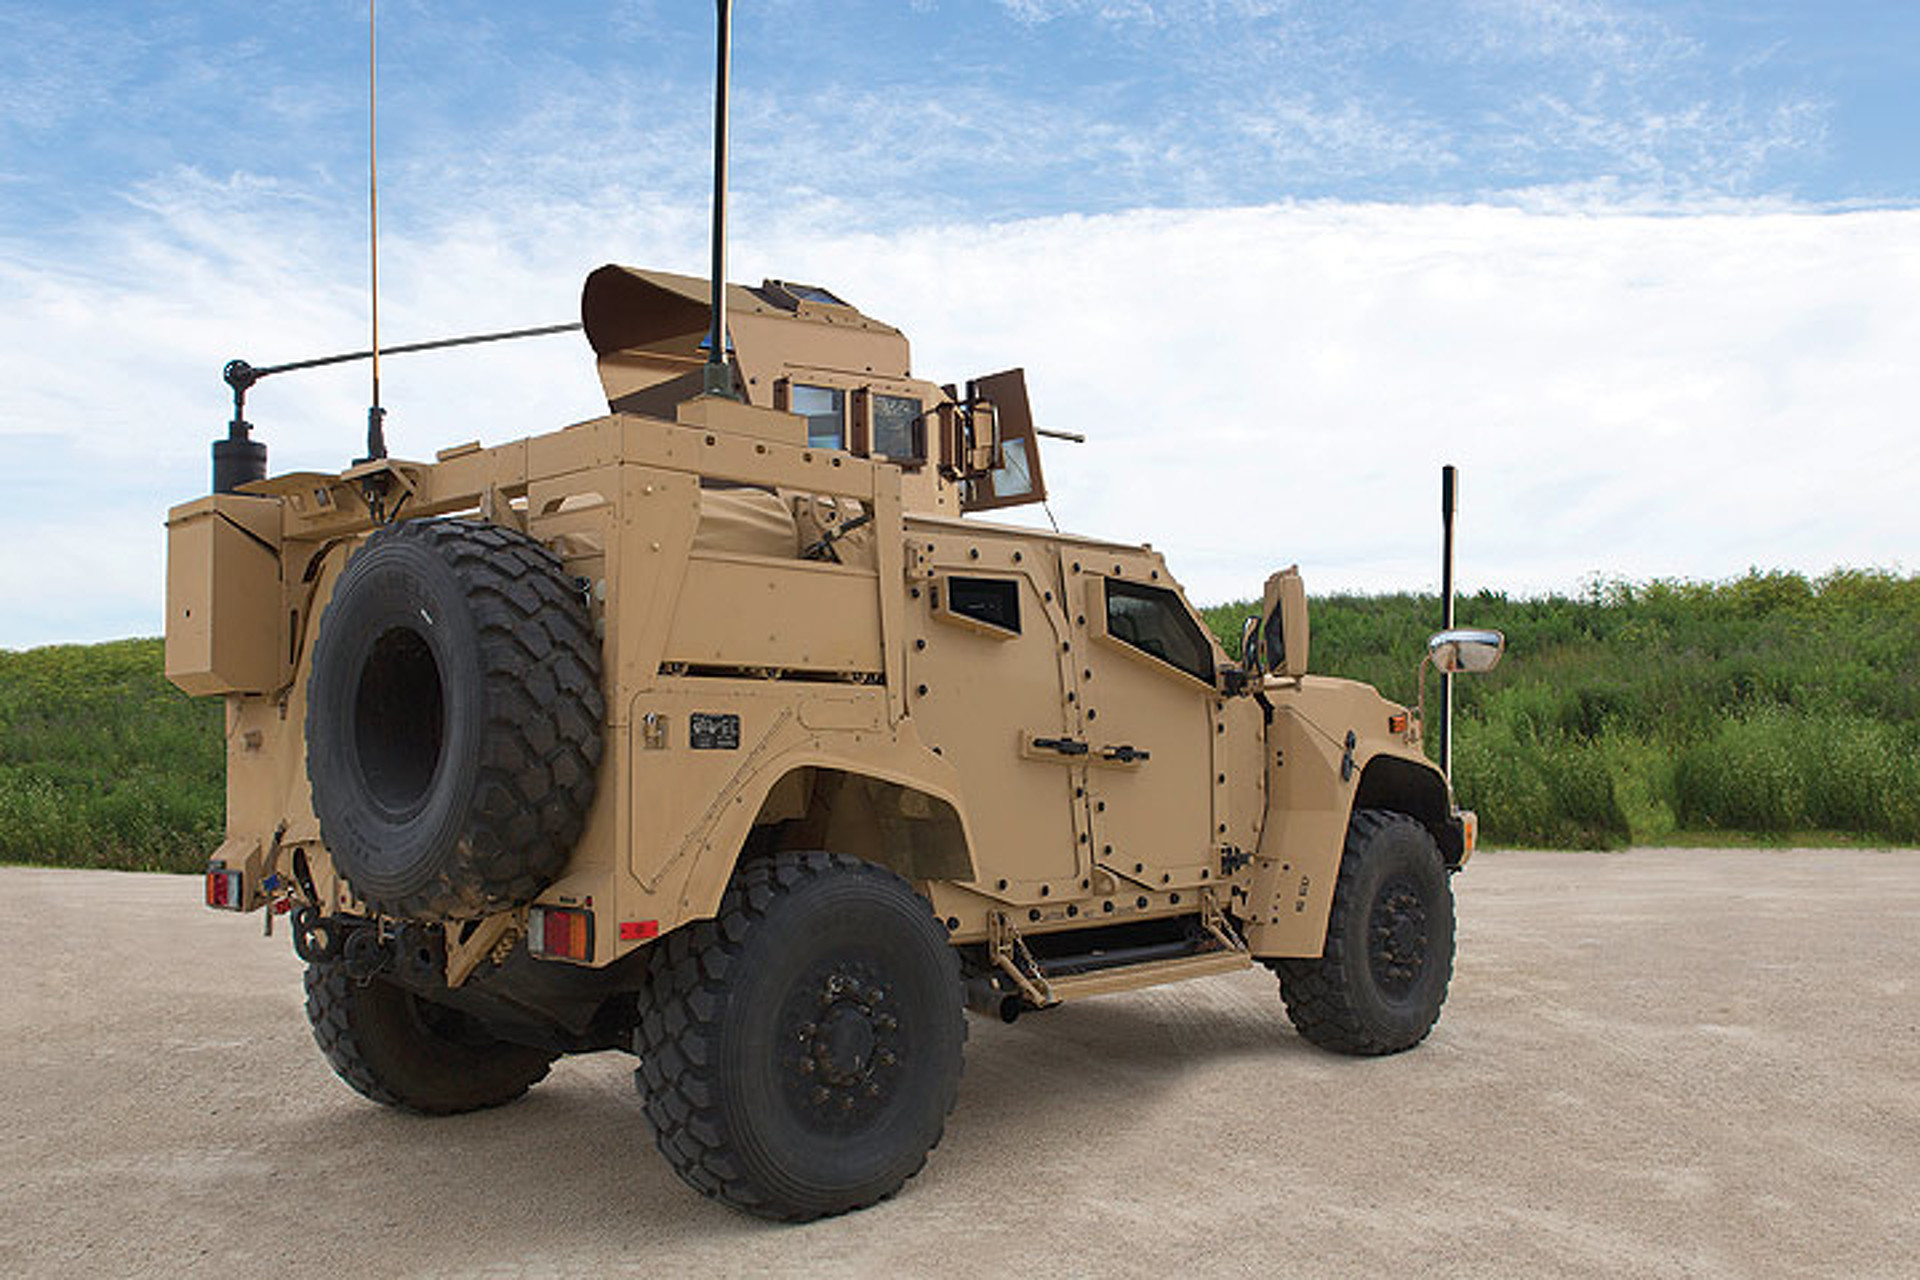 How Does the Oshkosh JLTV Measure Up to the Humvee?